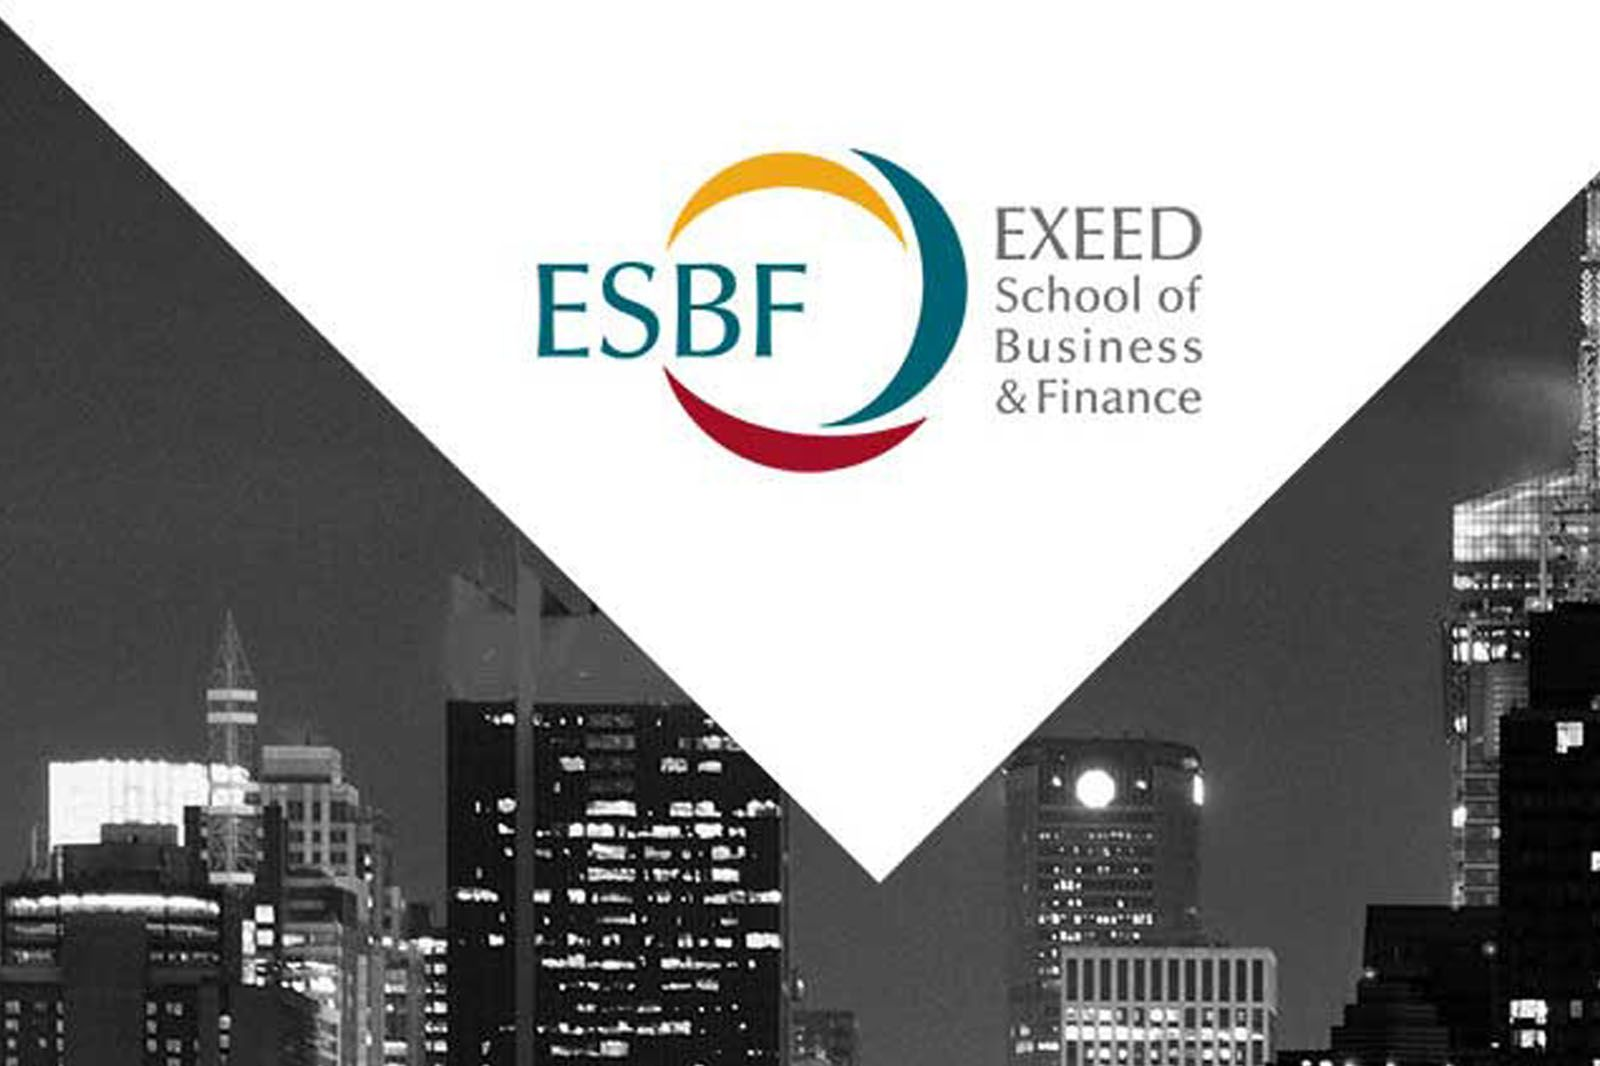 Exeed School Of Business And Finance Is A Uk Based Educational